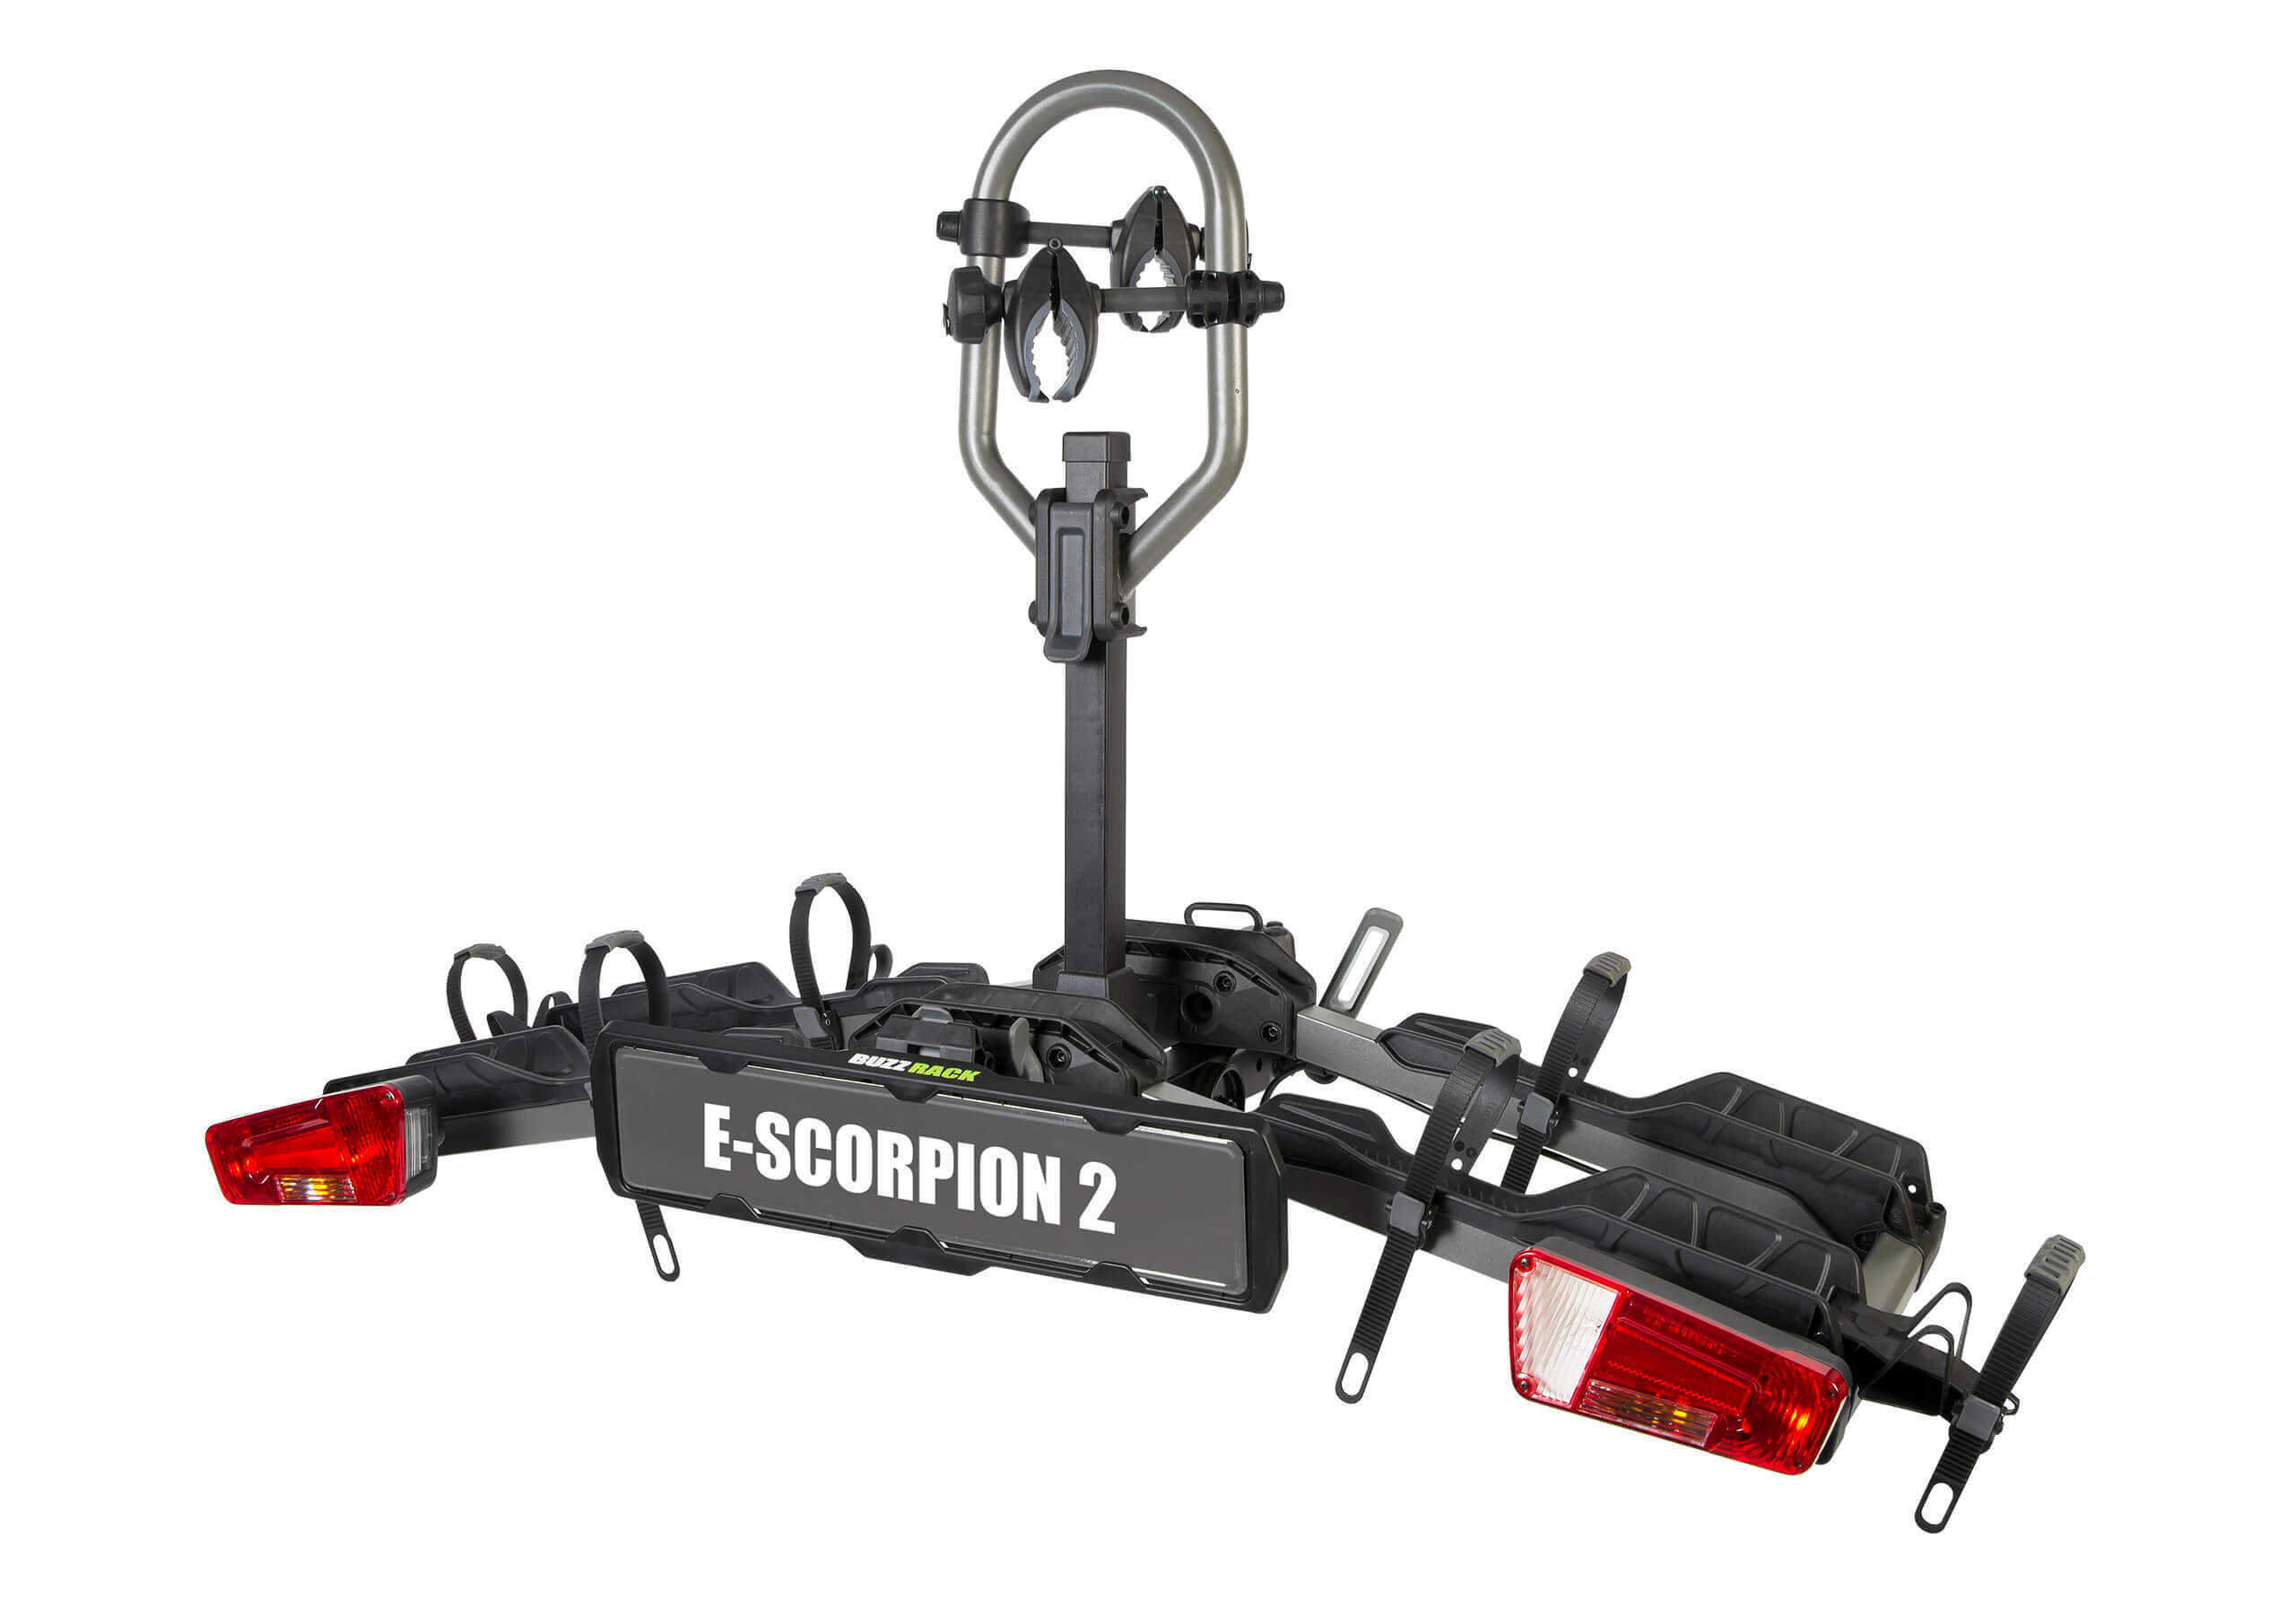 :BUZZ RACK E-Scorpion 2 bike folding rack no. BRP612